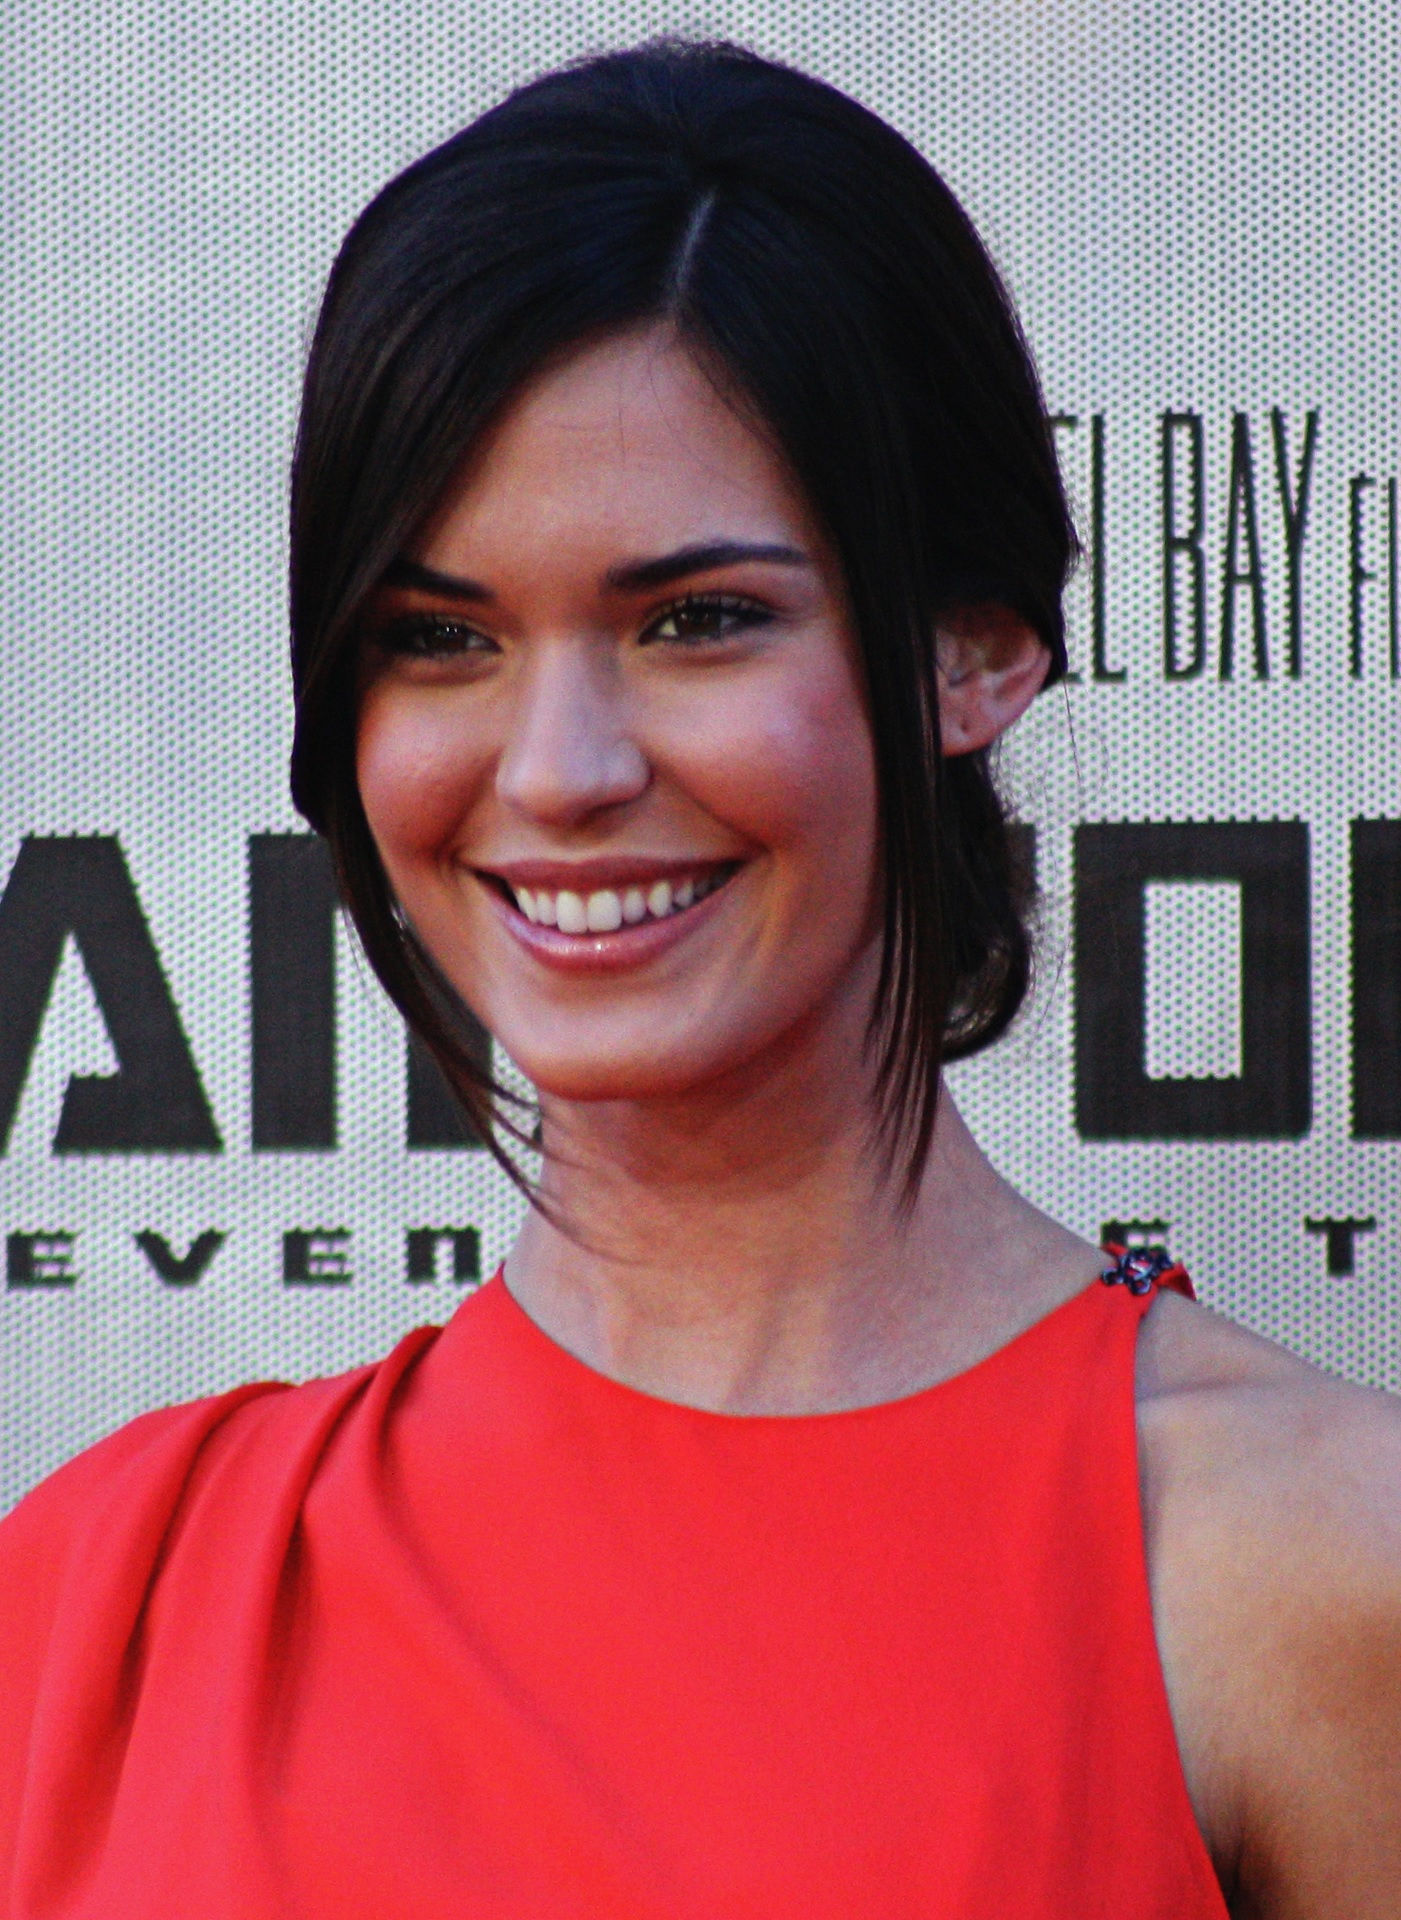 Photo of Odette Annable: American actress